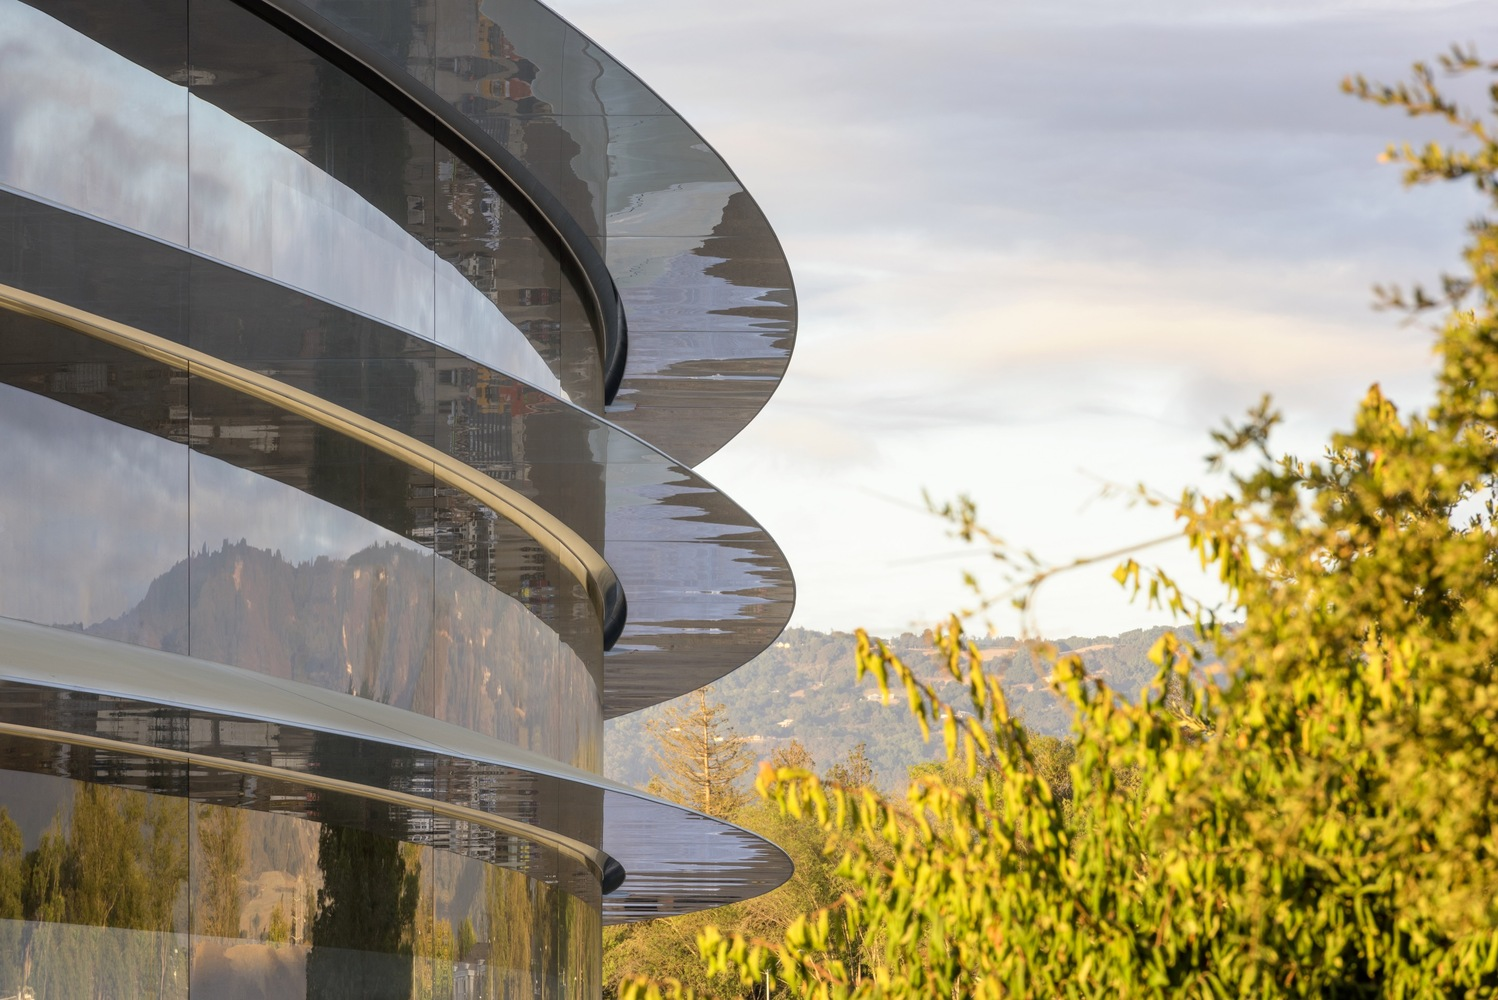 apple-park-photo-1-building-trees-igs magazine